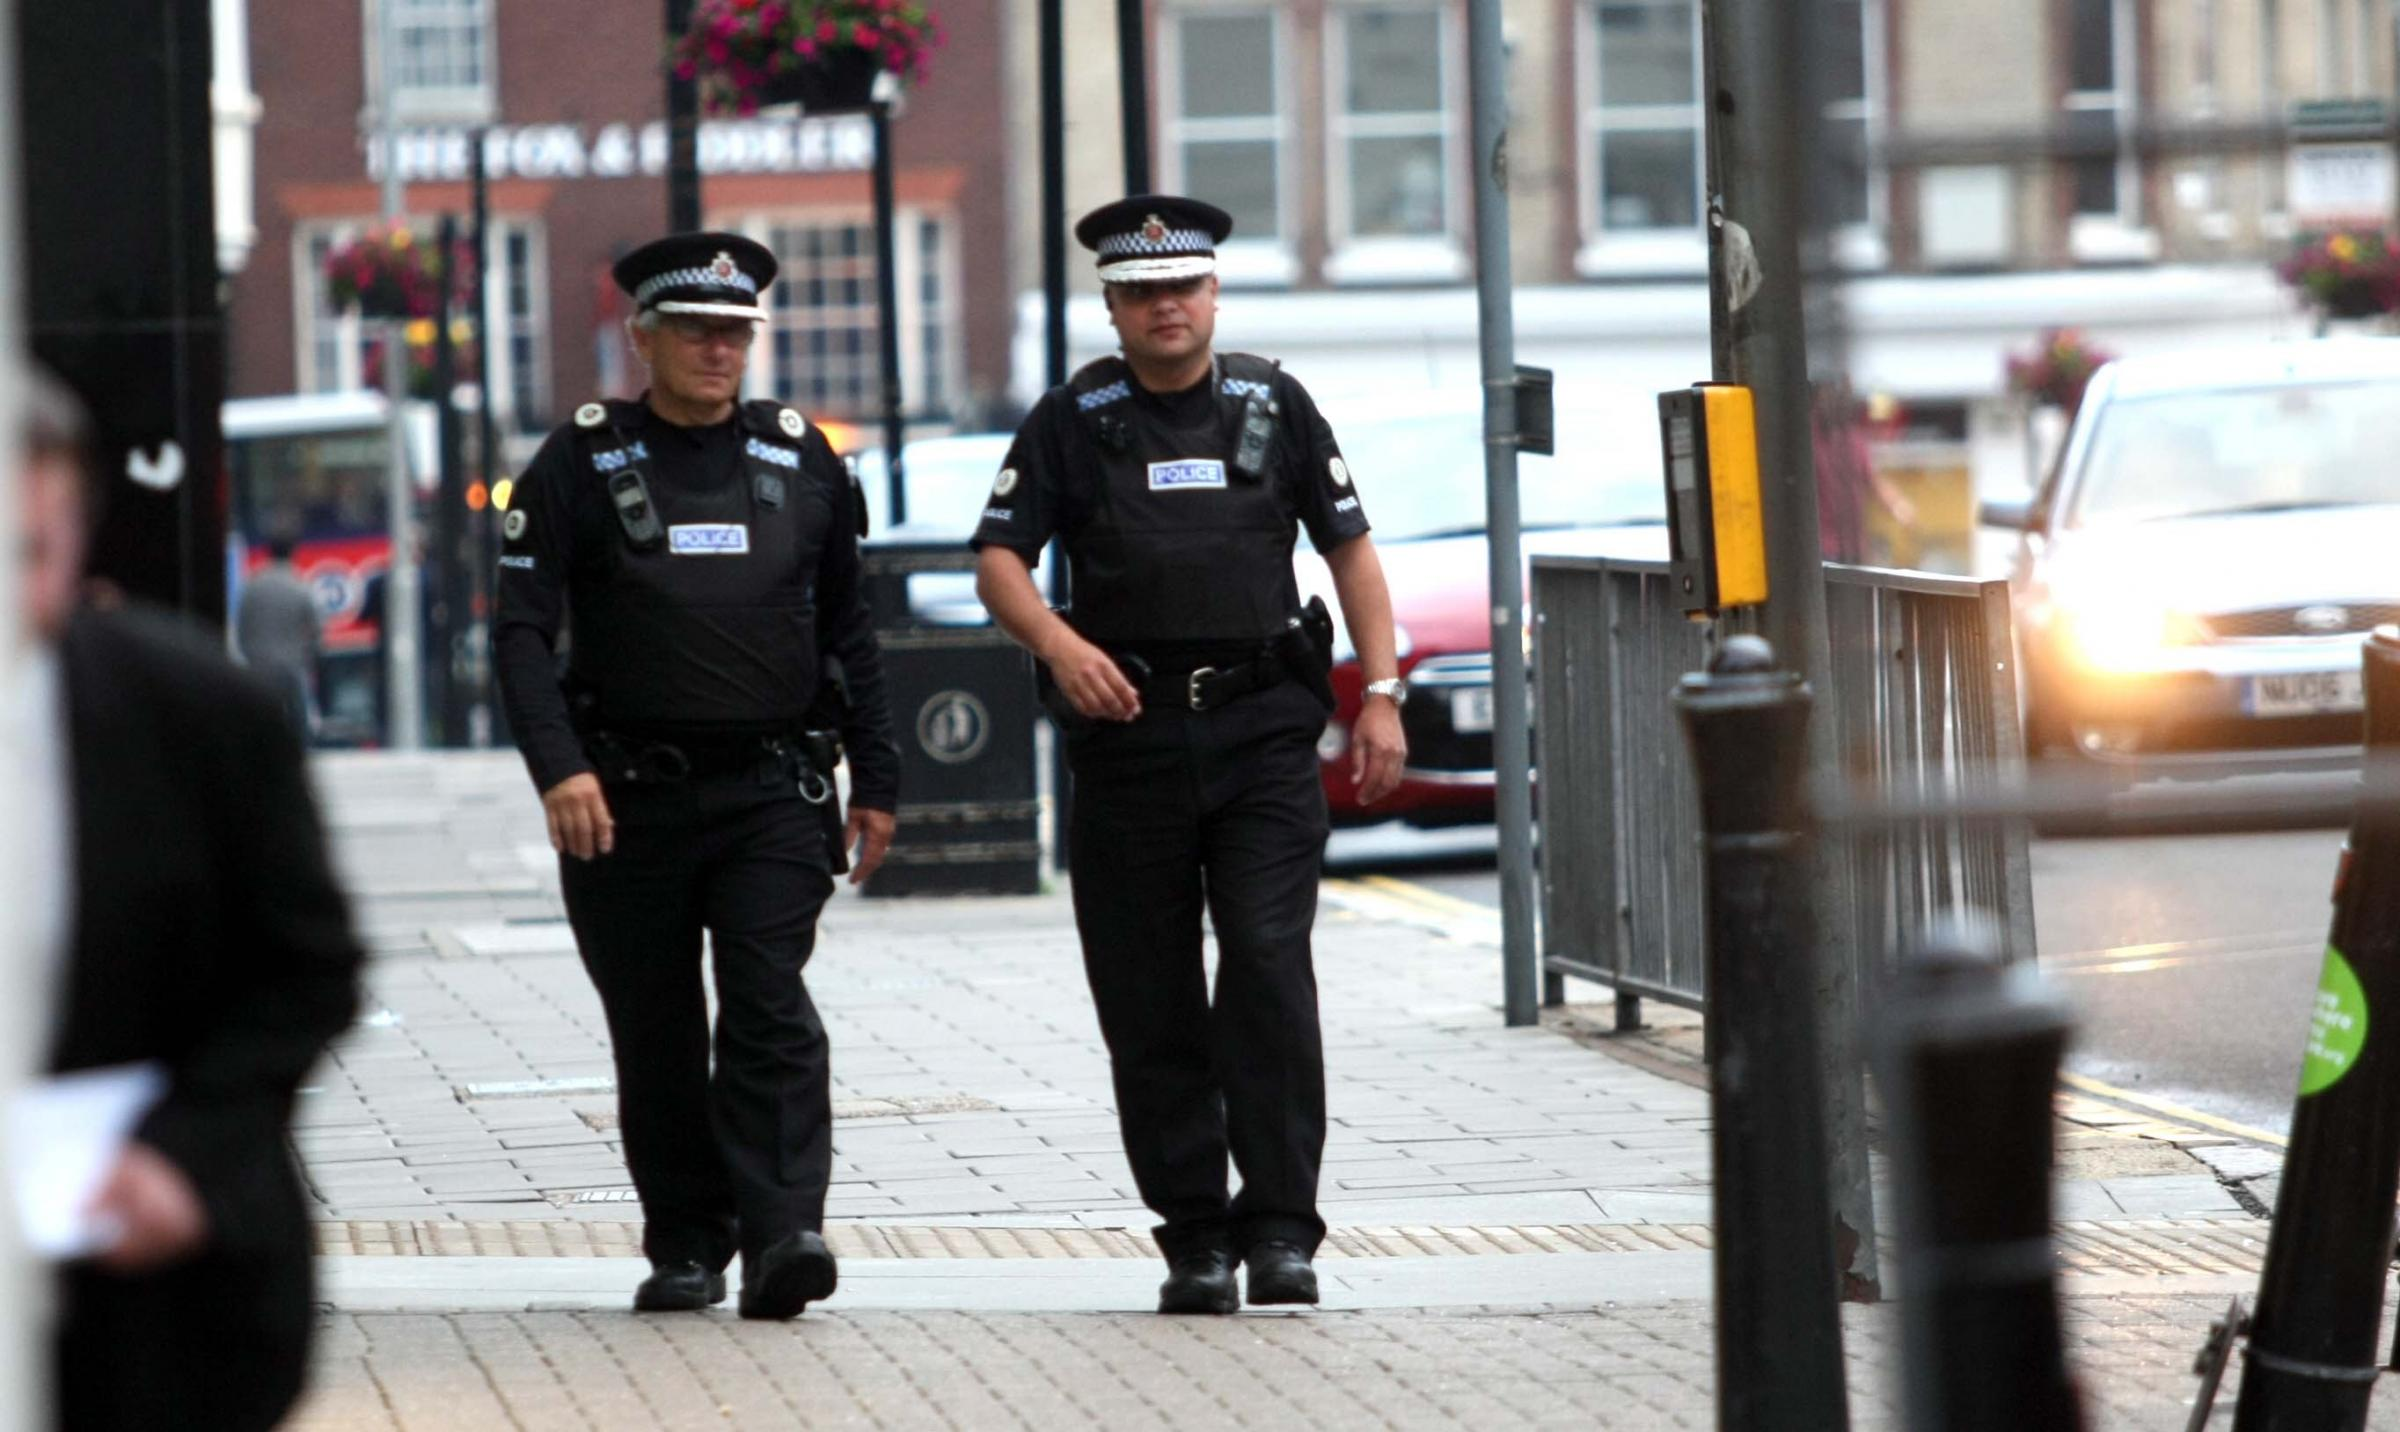 Patrol - special constables who give up their time for free on patrol in Colchester town centre